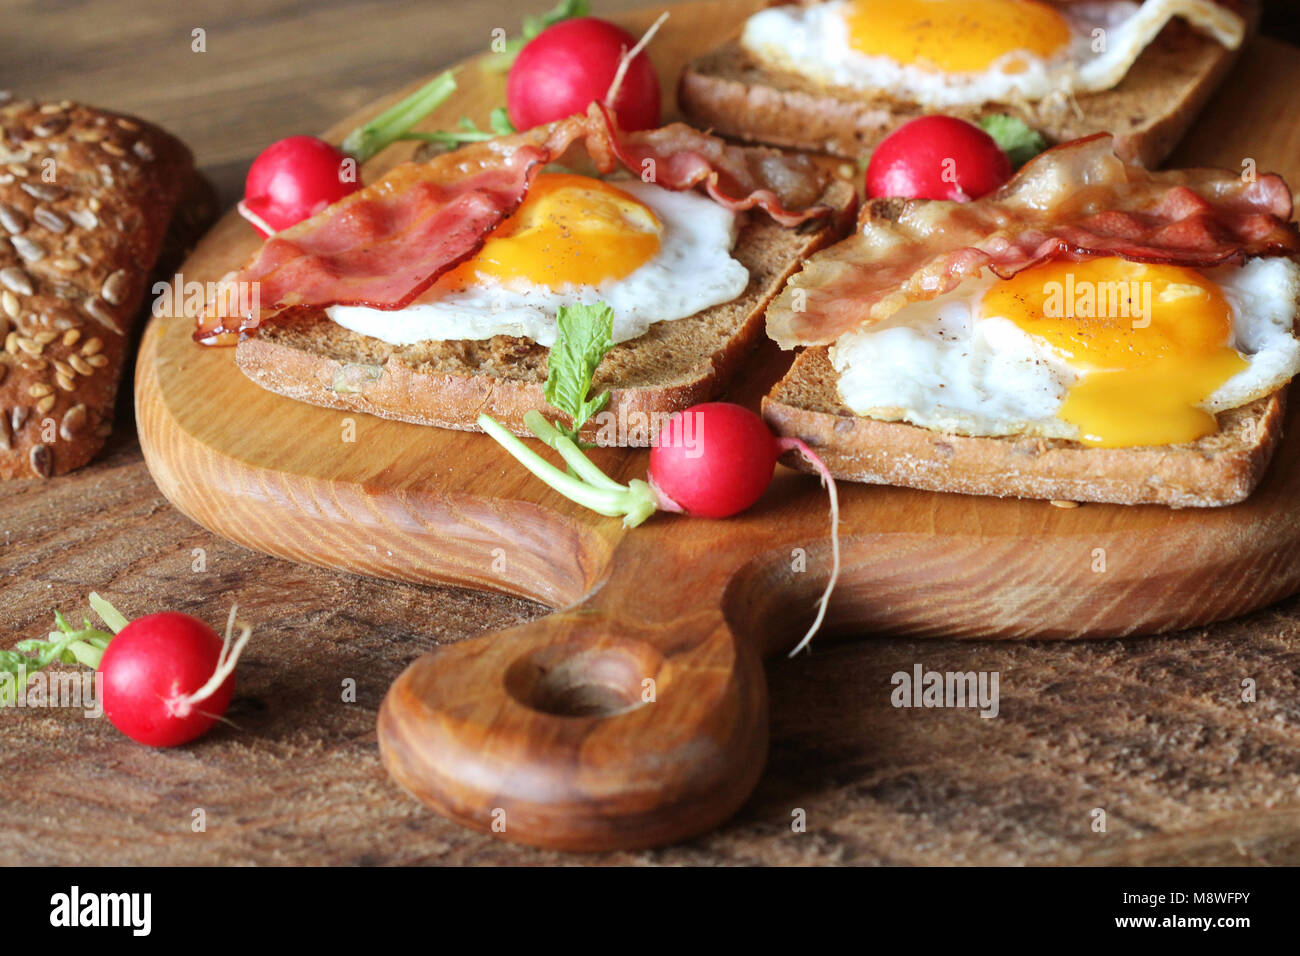 Breakfast of crispy bacon, fried eggs and bread. Sandwiches on cutting board. Rustic table . - Stock Image